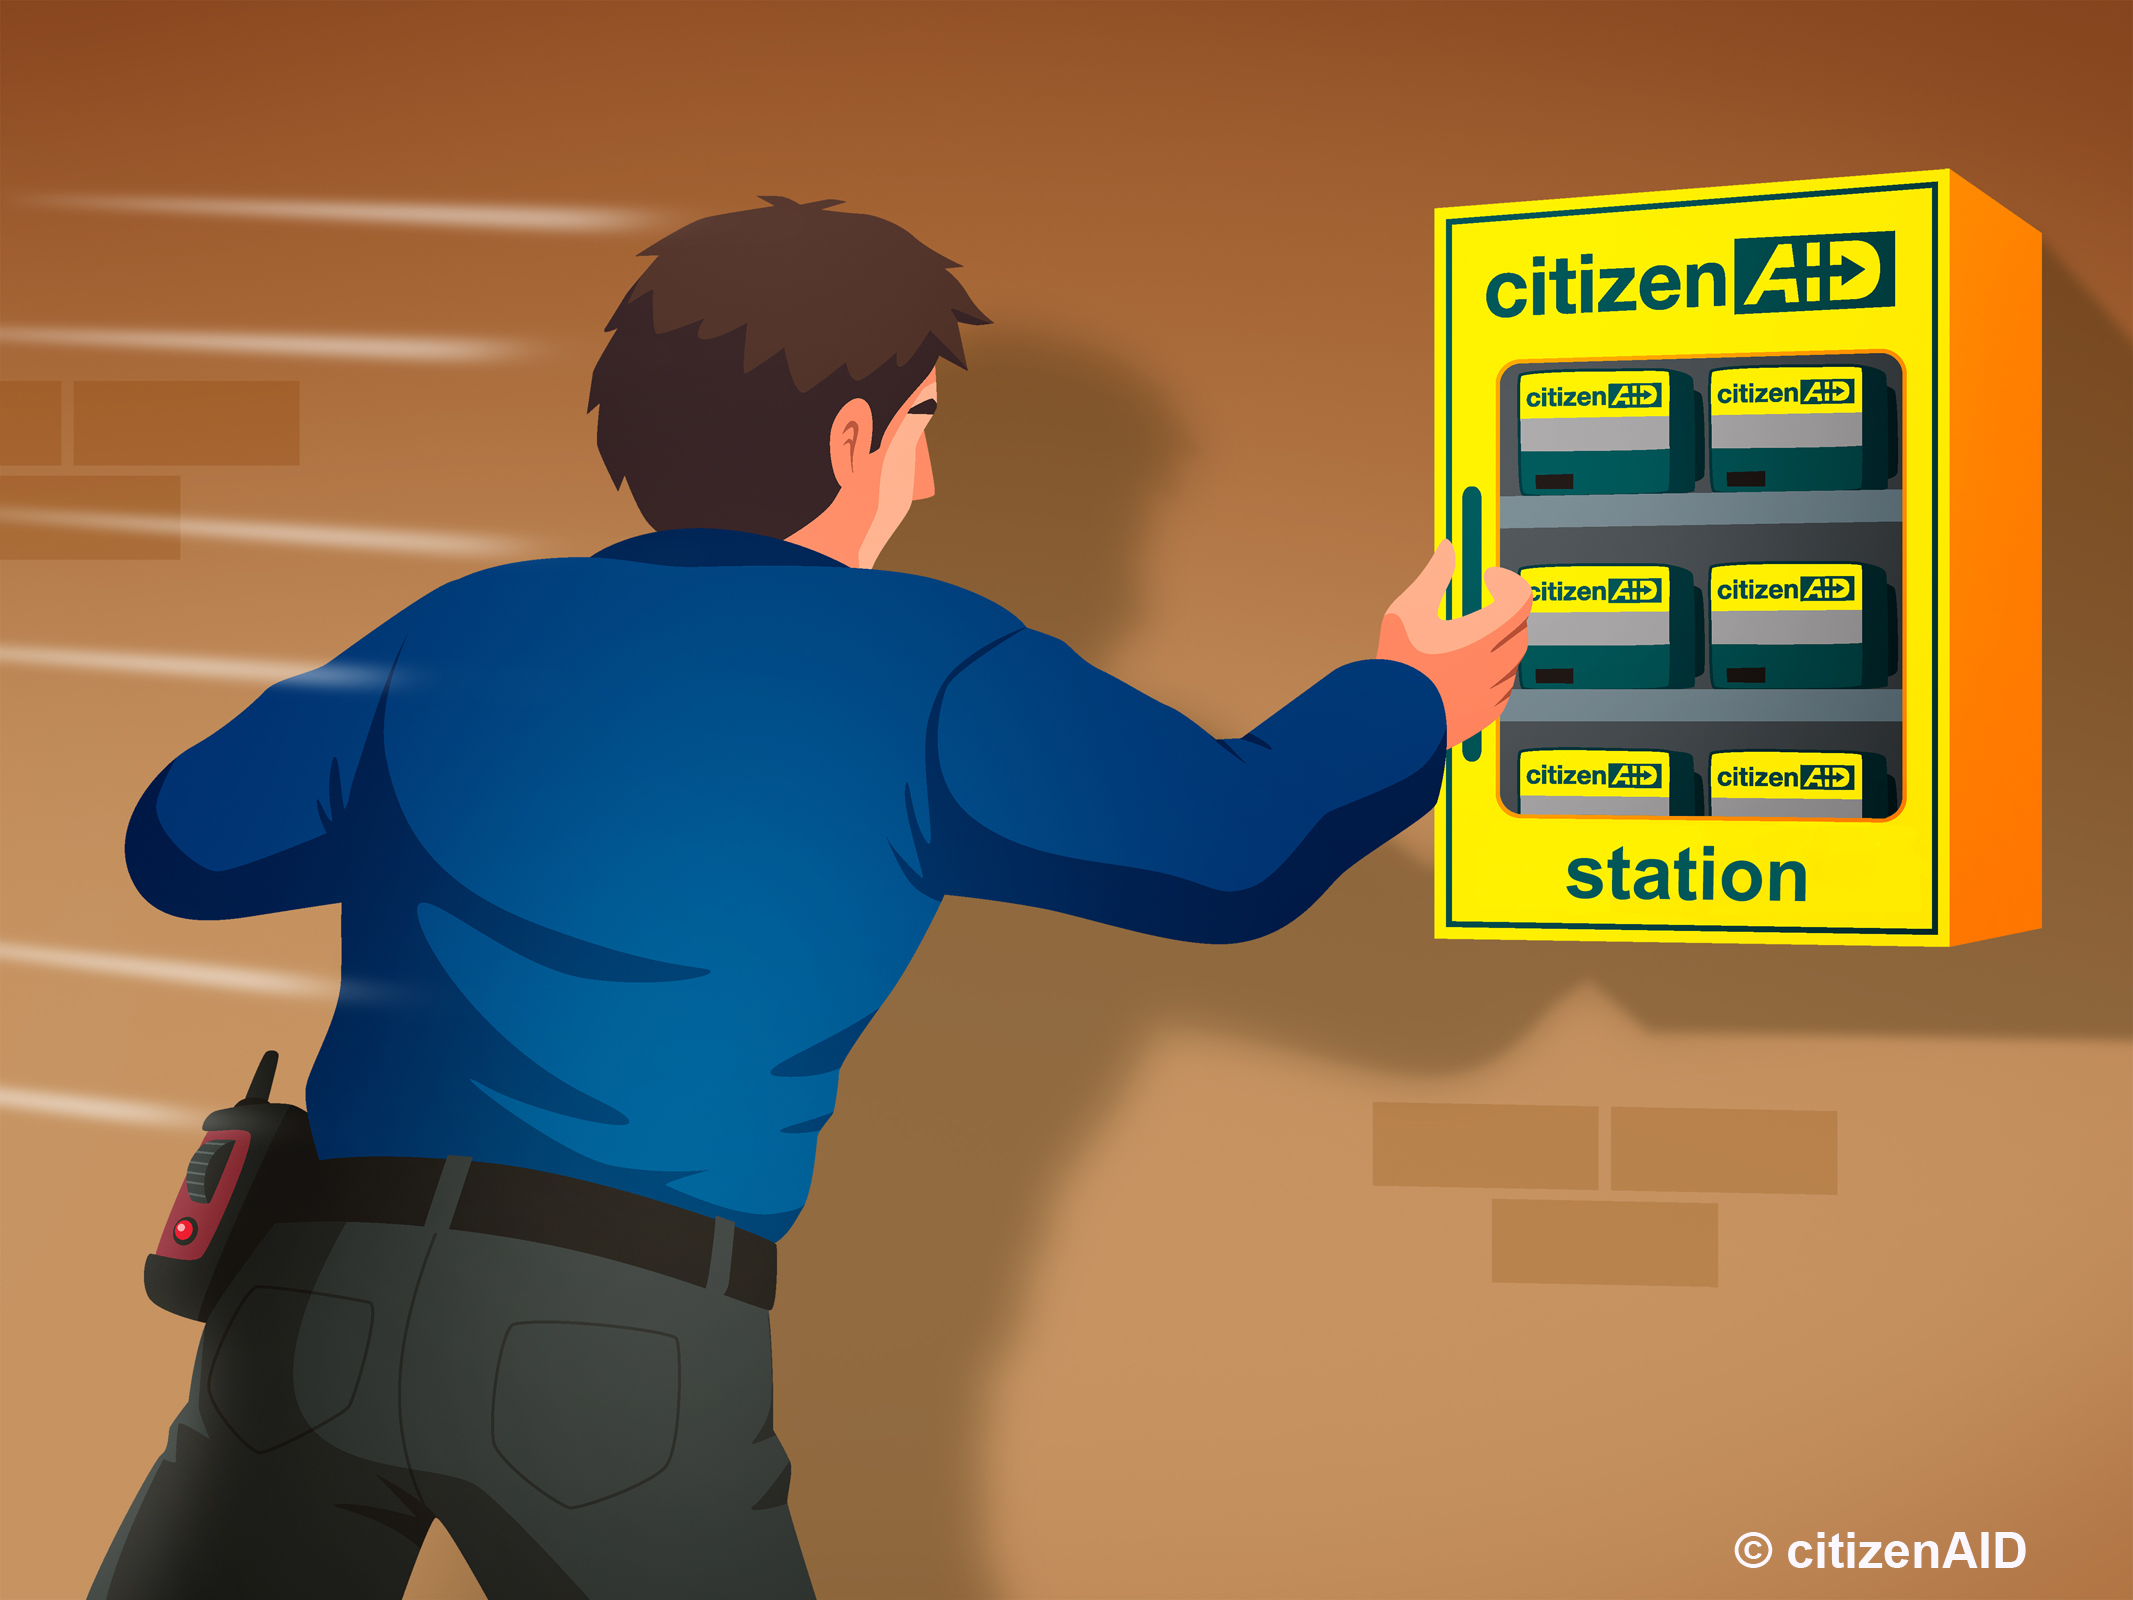 citizenAID Wall Mounted Cabinet